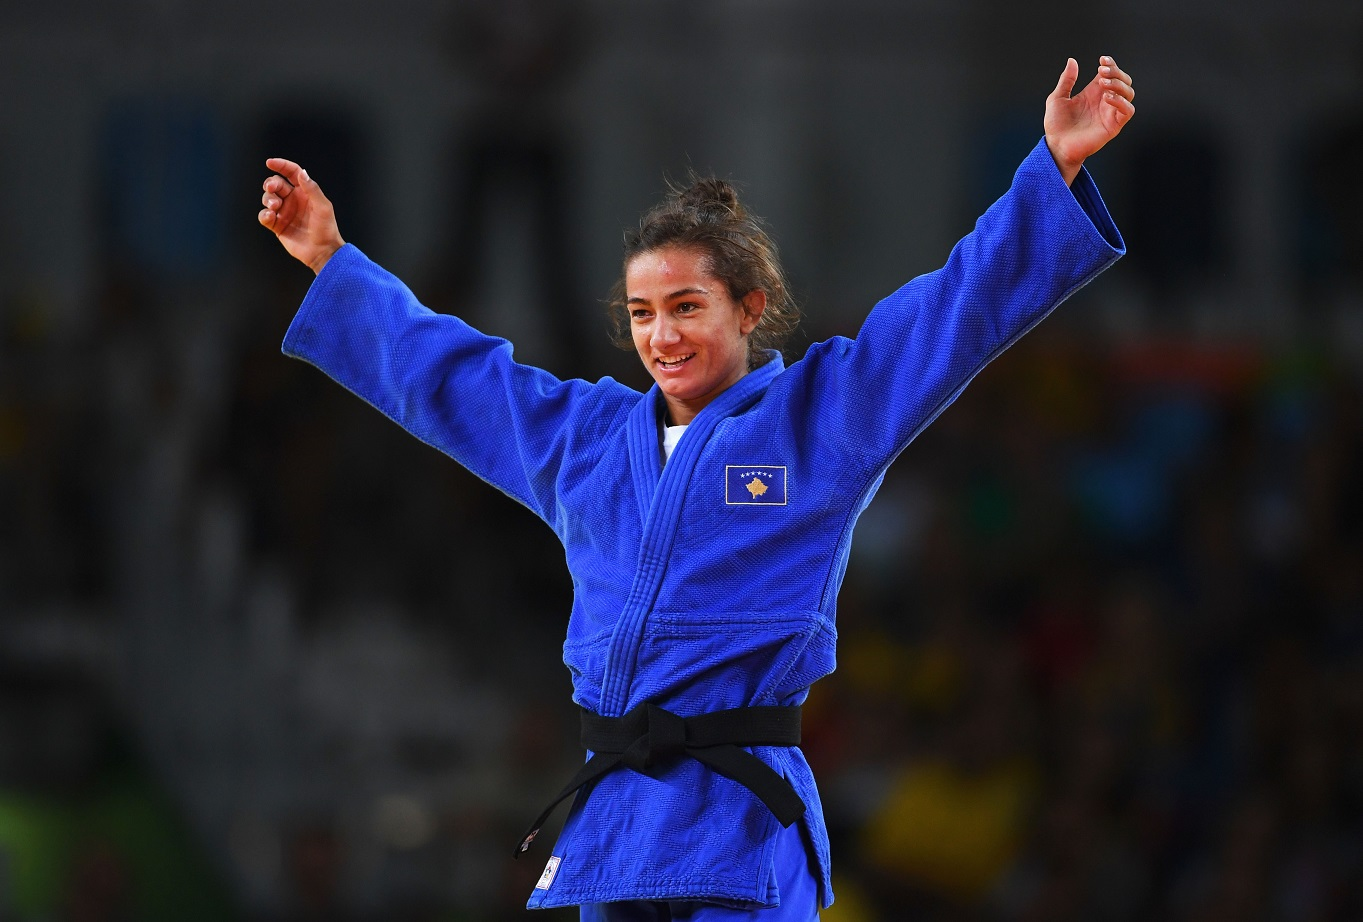 Judo star is first Kosovan to ever win Olympic medal